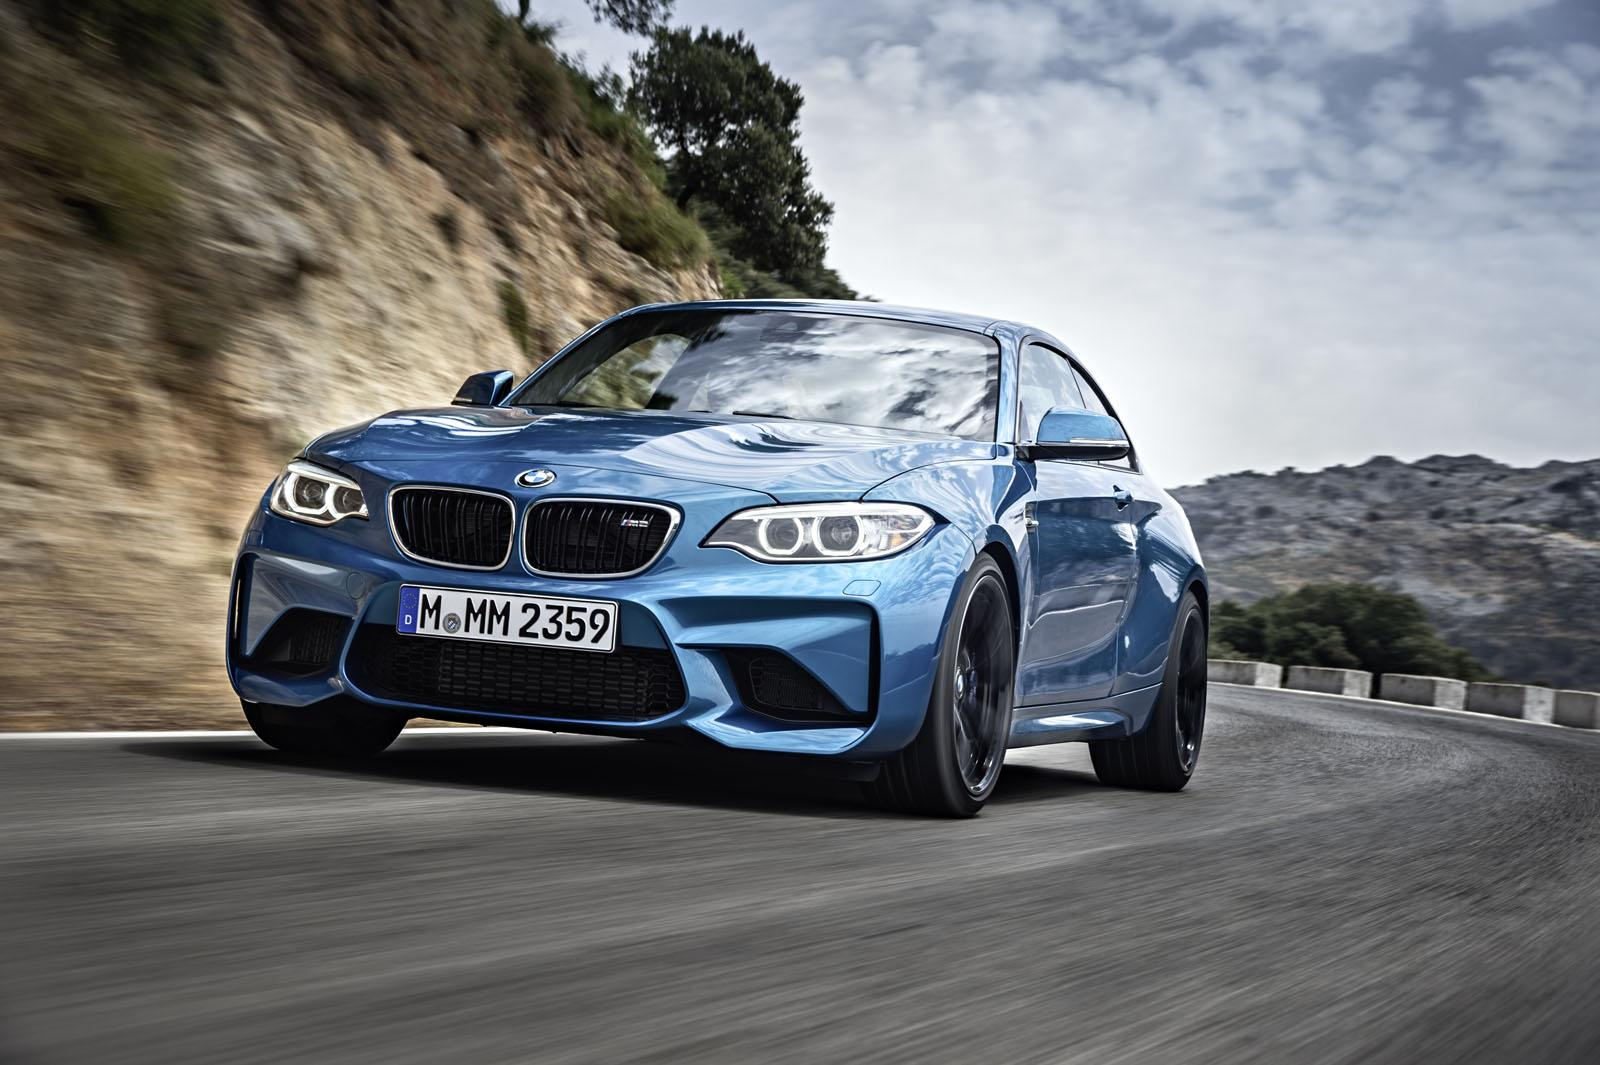 2016 BMW M2 Coupe Background Wallpaper HD Car Wallpapers 1600x1065